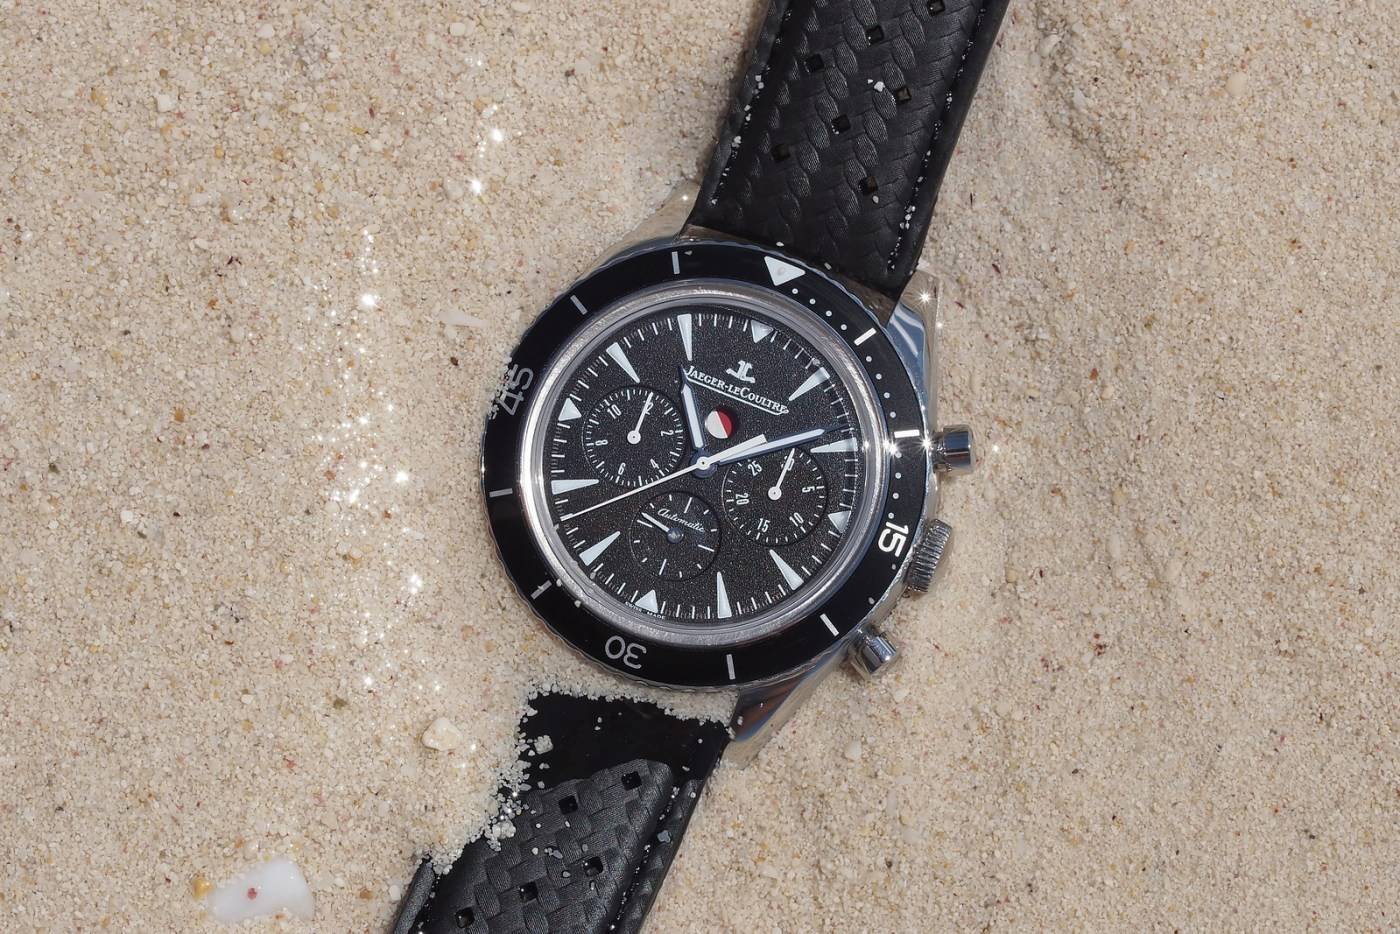 Jaeger-LeCoultre Deep Sea Chronograph buried